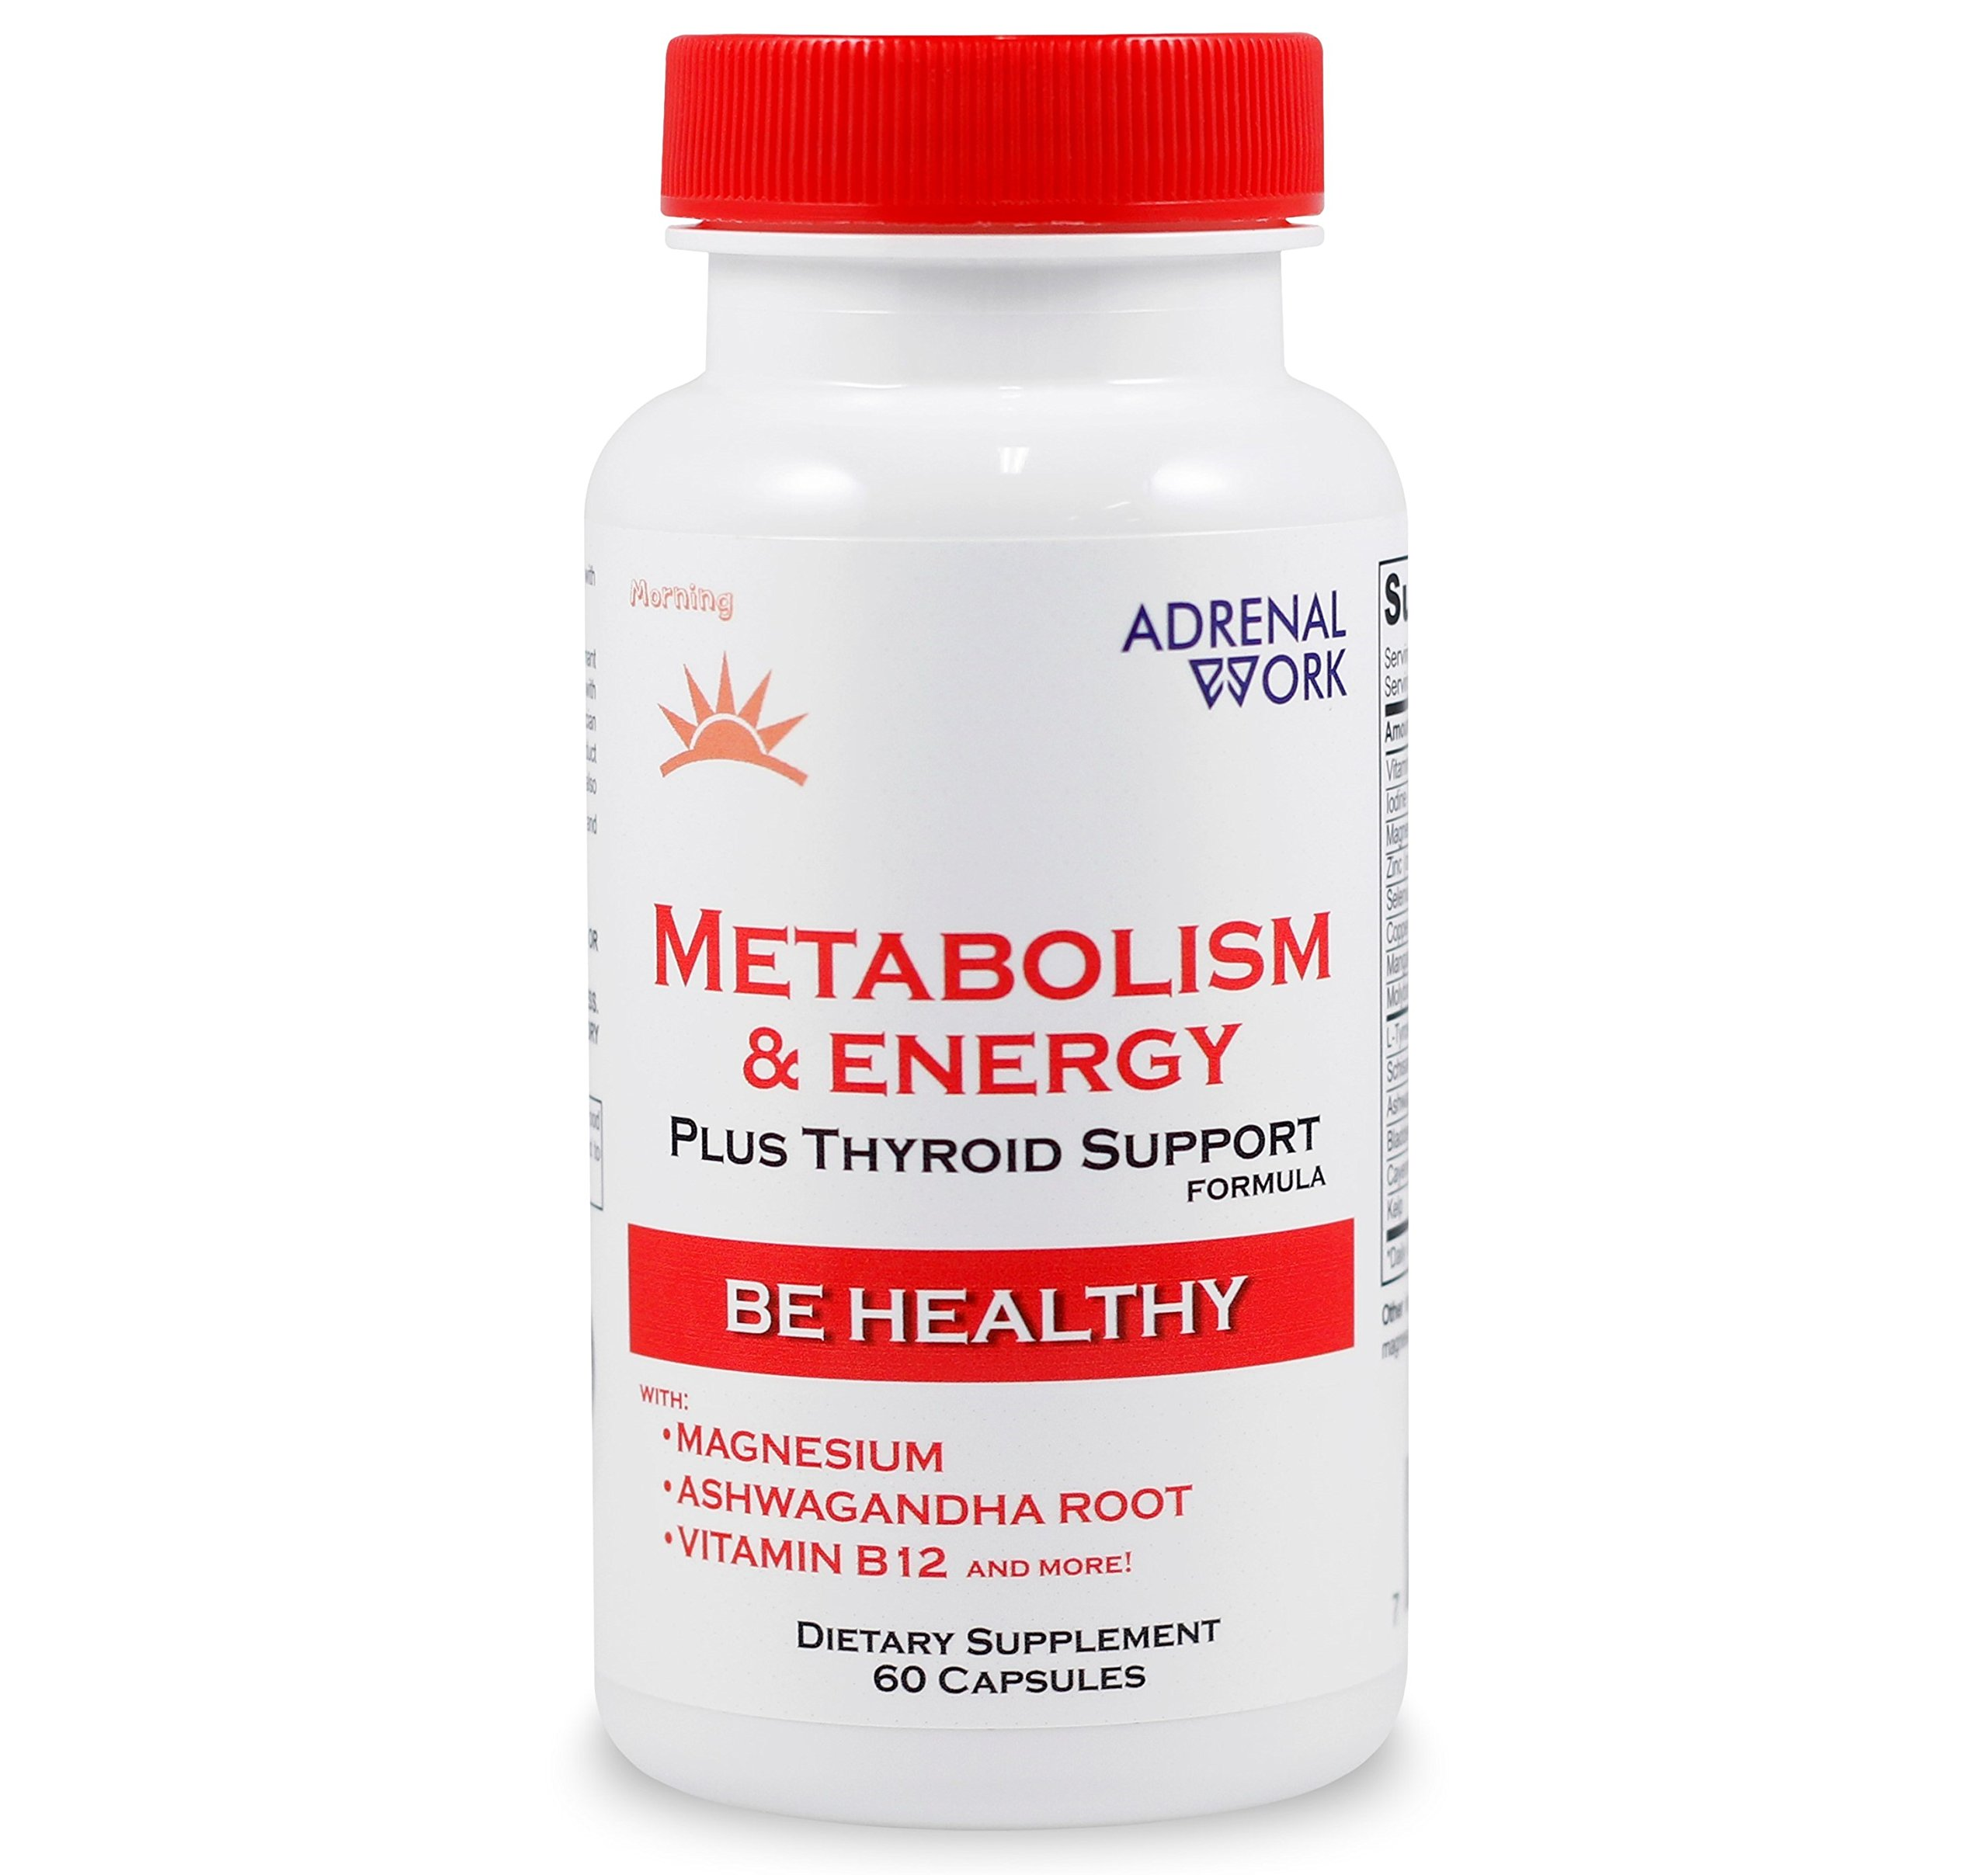 Natural Energy & Metabolism Booster Pills: Metabolism Boosting Formula for Weight Loss, Adrenal Support and Organic Thyroid Supplement for Men & Women, with Magnesium and ashwagandha - 60 Capsules by Adrenalwork